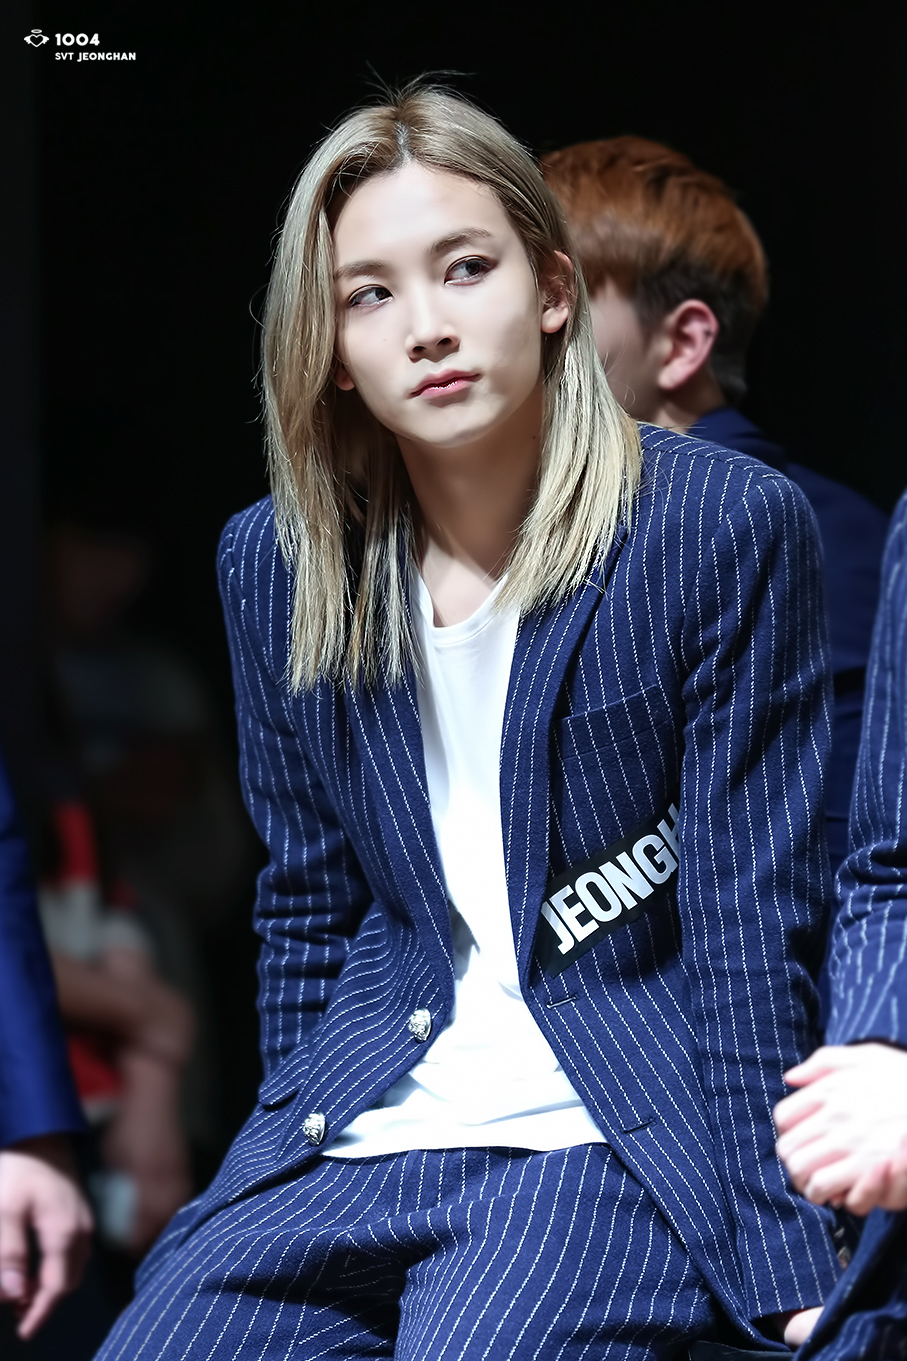 SEVENTEEN JeongHan's Drastic Hair Changes Since Debut To Now